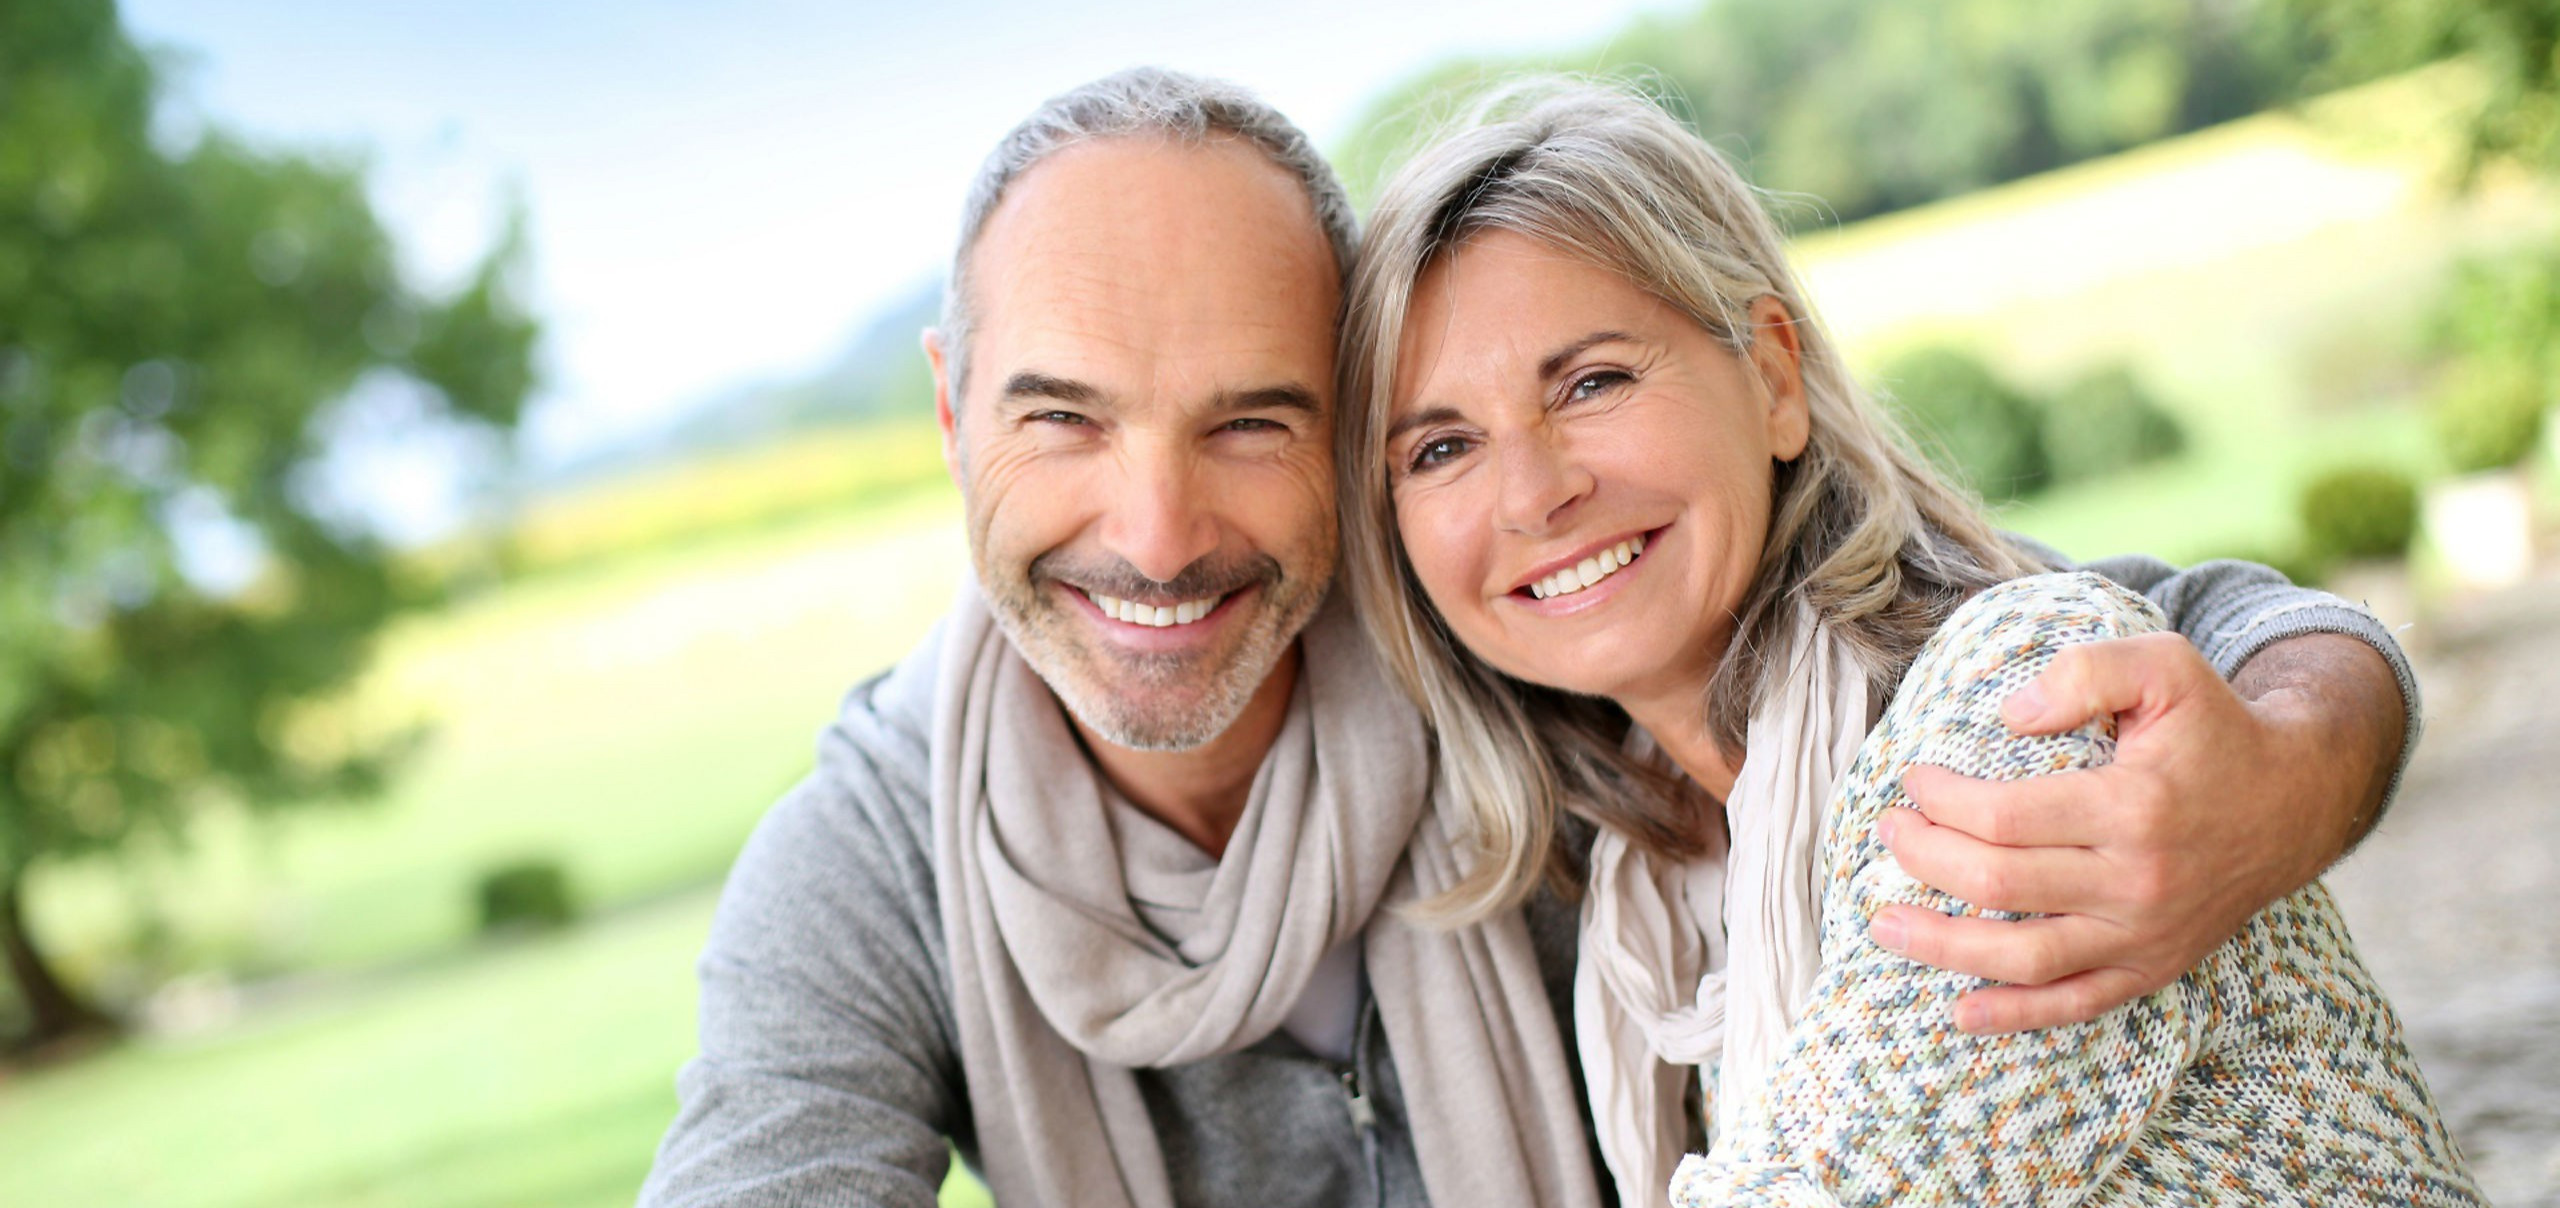 Happy-Old-Love-Couple-Smile-Images_edite